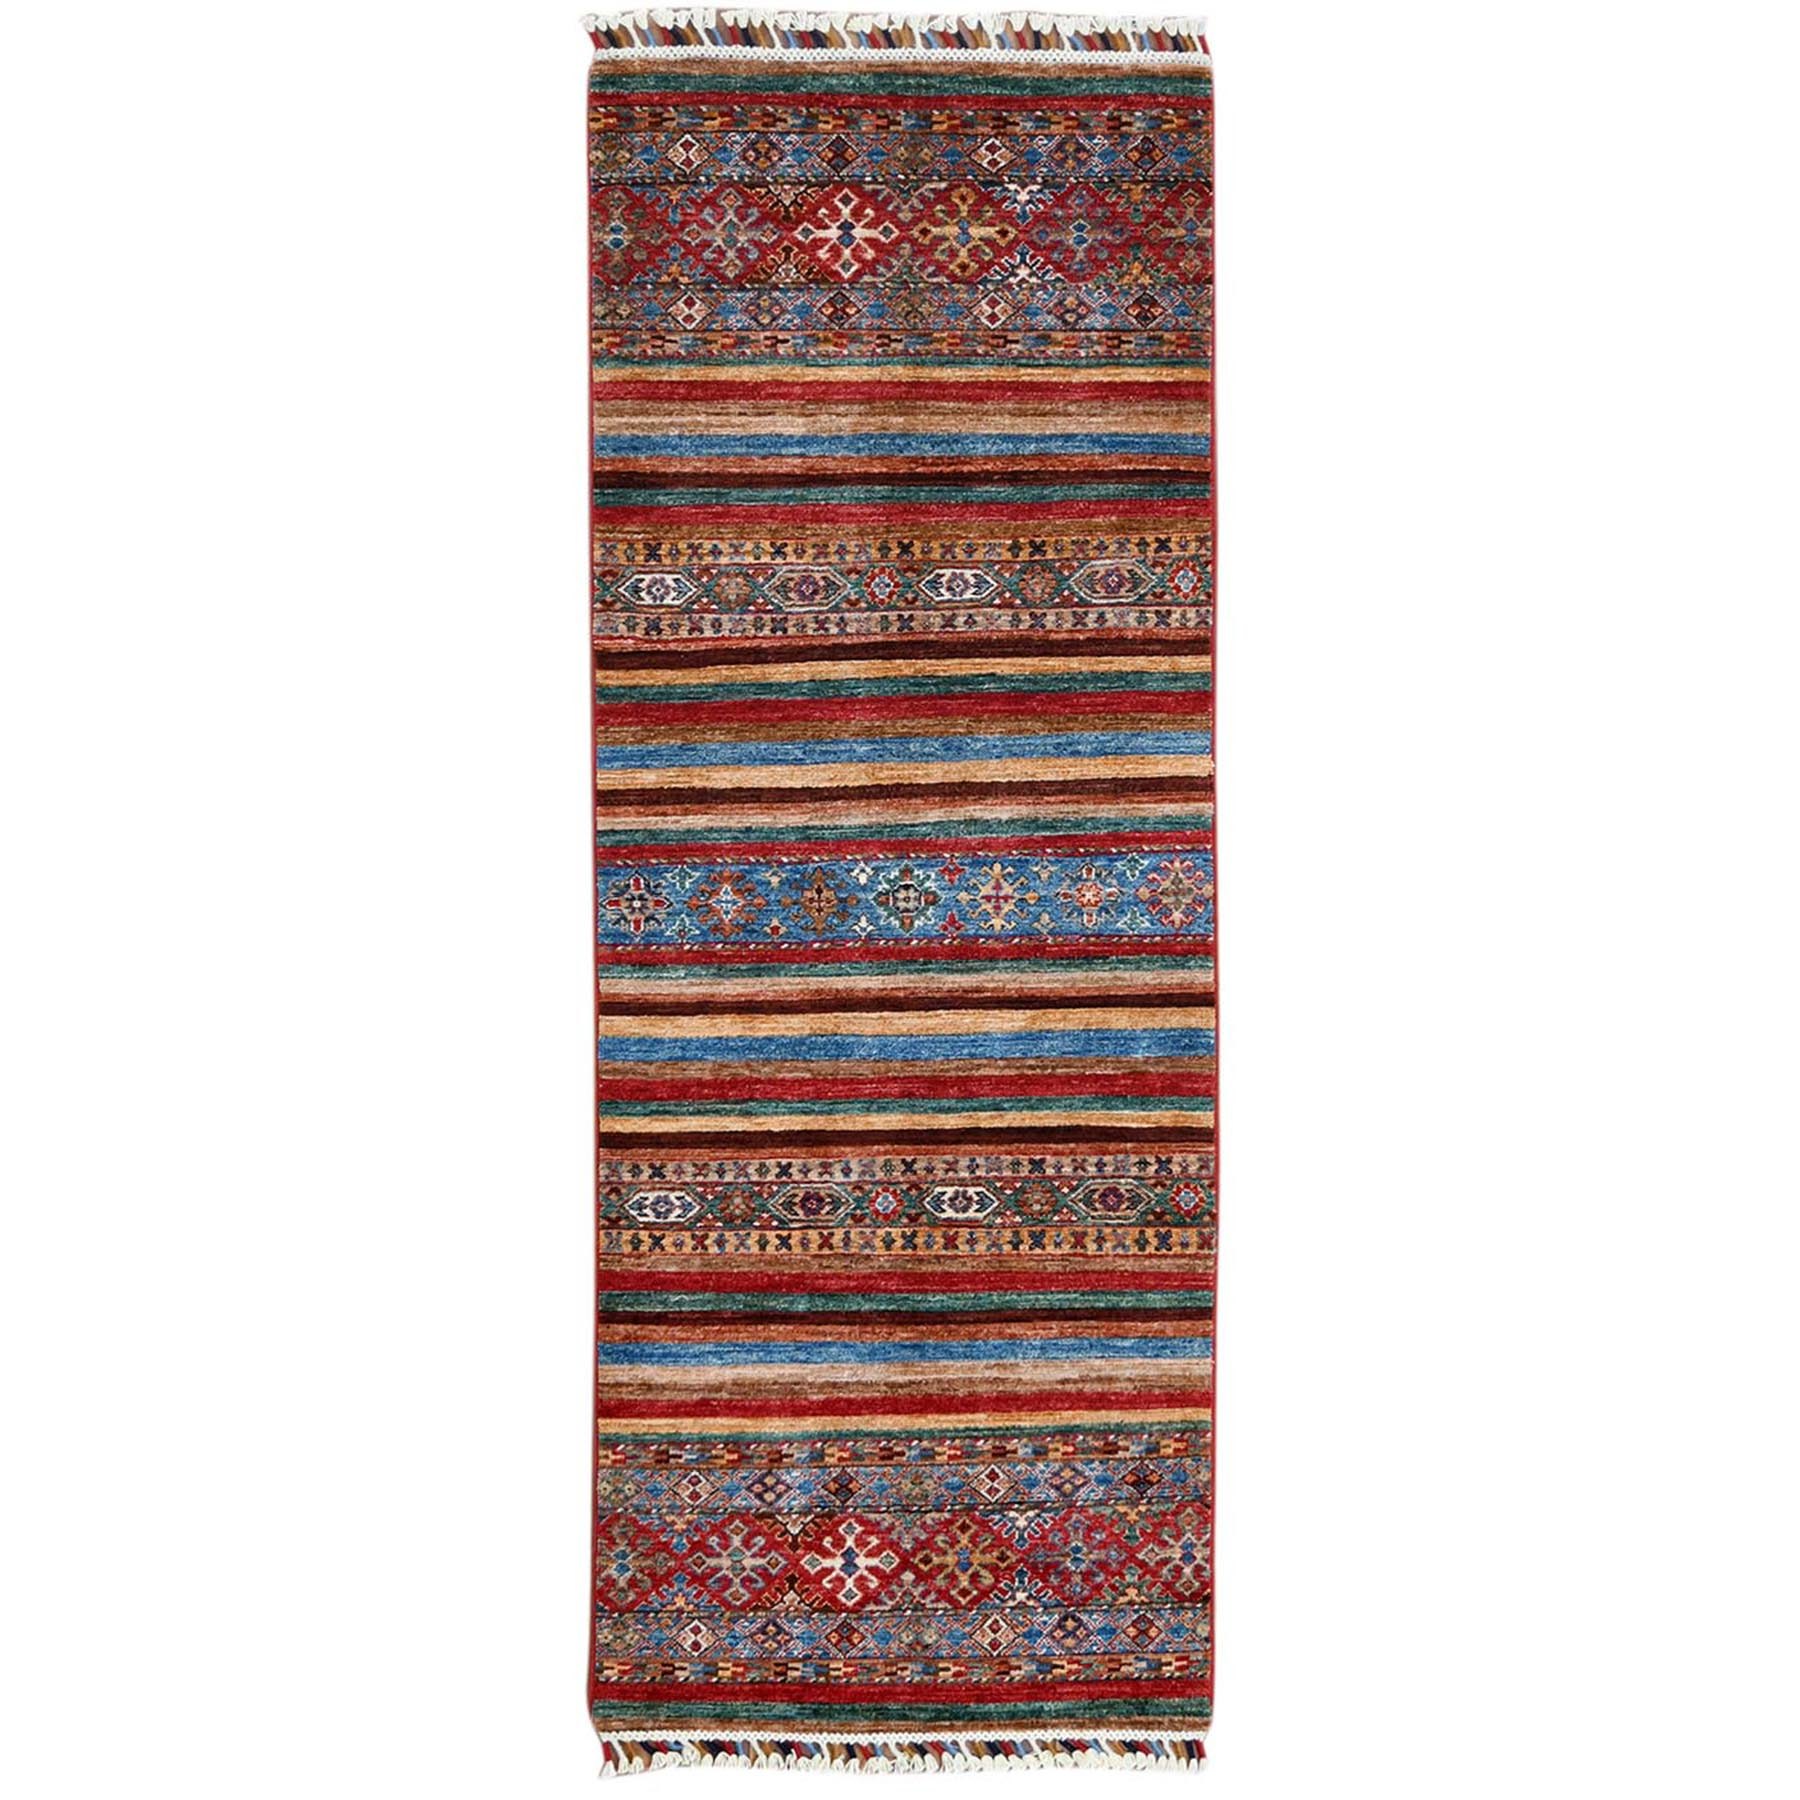 """2'5""""X6'6"""" Red Hand Knotted Super Kazak Khorjin Design With Colorful Tassles Organic Wool Oriental Runner Rug moa60bbe"""